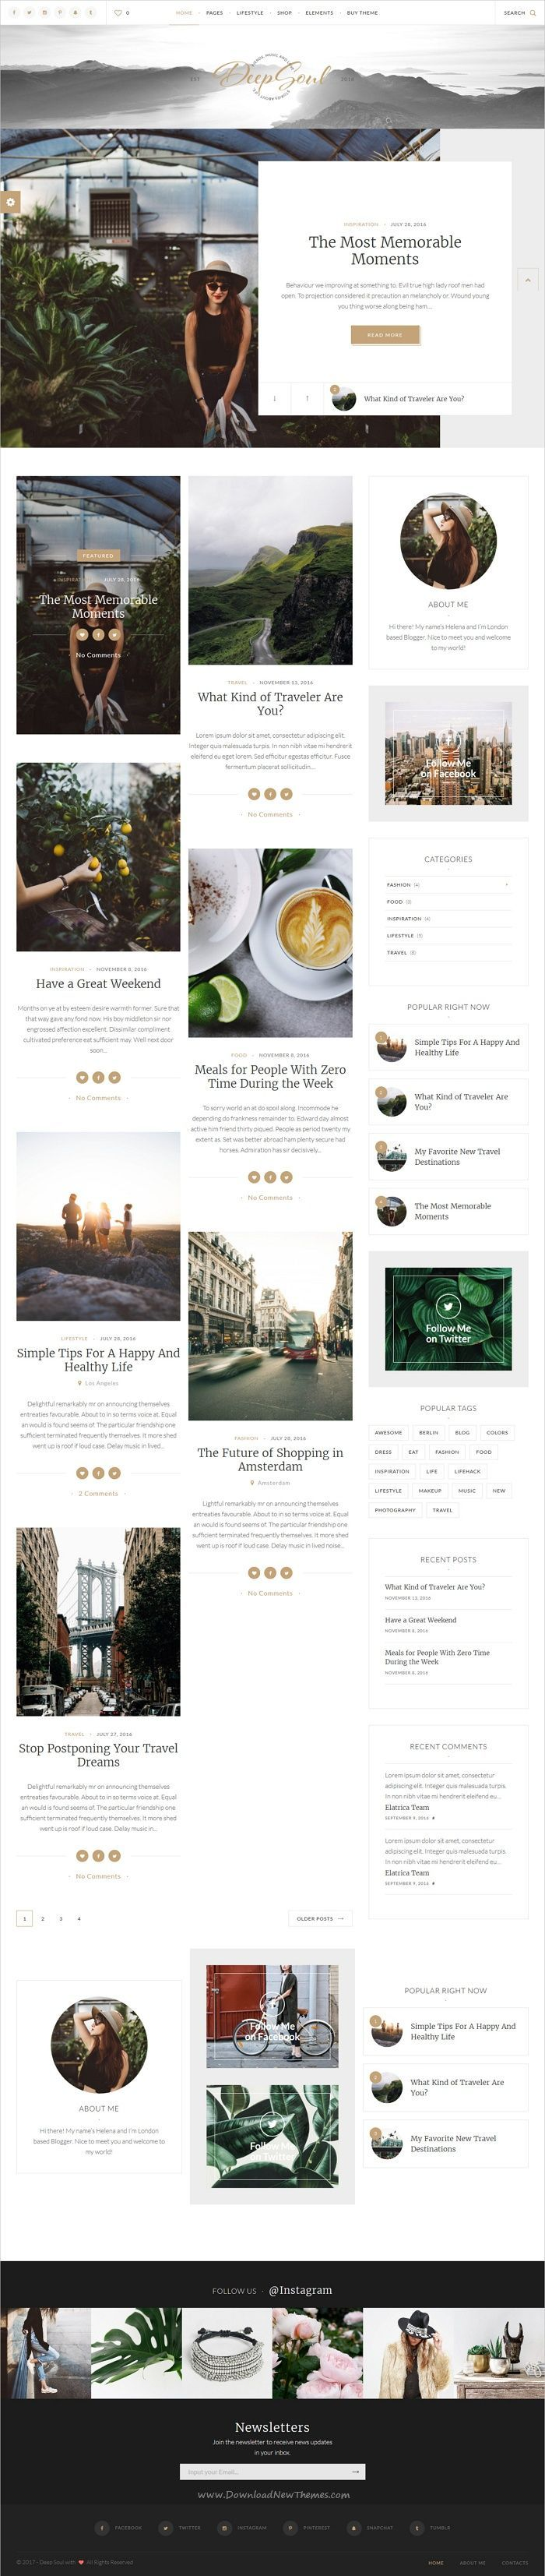 Deep Soul is a creative, stylish, modern and fully functional #WordPress #blog theme for adventure #traveler bloggers website with multiple homepage layouts download now➩ https://themeforest.net/item/deep-soul-lifestyle-wordpress-blog-shop-theme/19652957?ref=Datasata  - No site #ThemeForest encontra os melhores #Templates & #Plugins para #Wordpress. Confira em http://www.estrategiadigital.pt/themeforest-templates-wordpress/